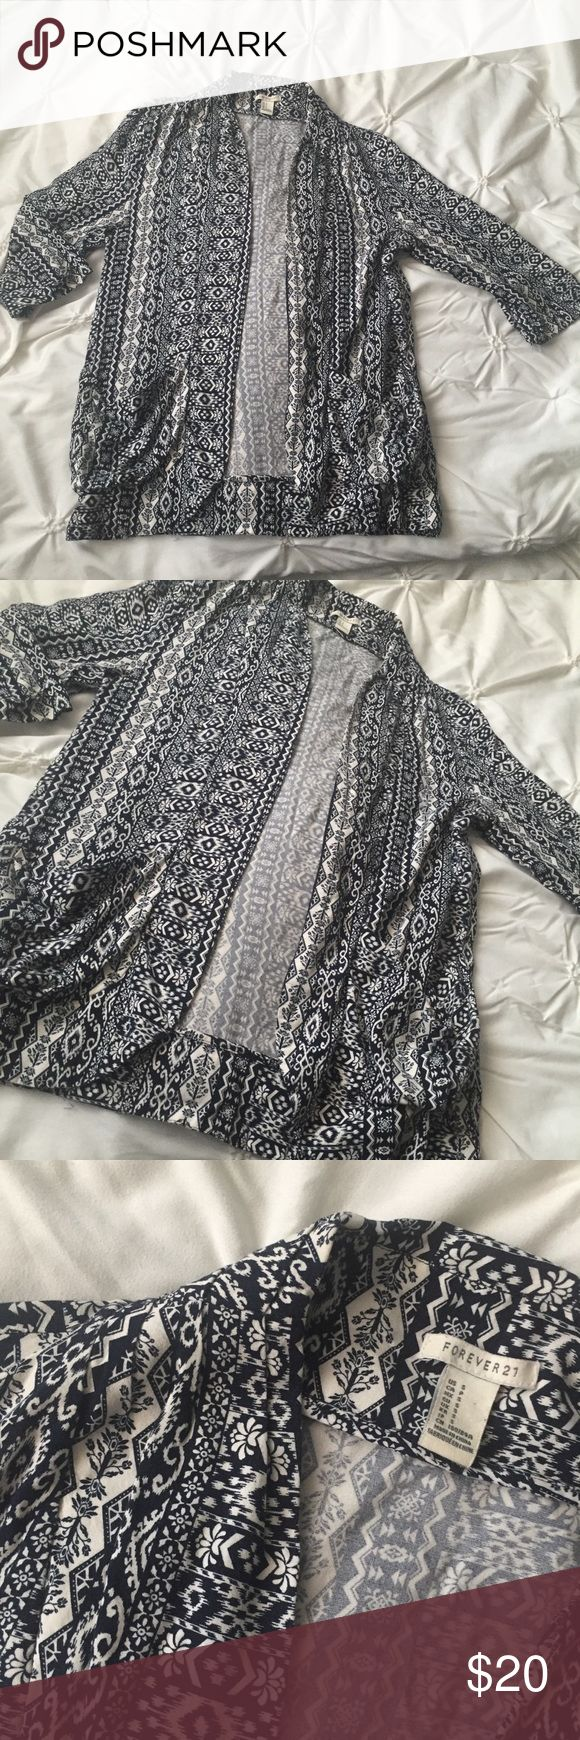 Forever 21 Navy Tribal Aztec Short Sleeve Cardigan Forever 21 Navy Tribal Aztec Short Sleeve Cardigan Top size Small ------ 🚭 All items are from a non-smoking home. 👆🏻Item is as described, feel free to ask questions. 📦 I am a fast shipper with excellent ratings. 👗I love bundles & bundle discounts. Feel free to make an offer! 😍 Like this item? Check out the rest of my closet! 💖 Thanks for looking! Forever 21 Tops